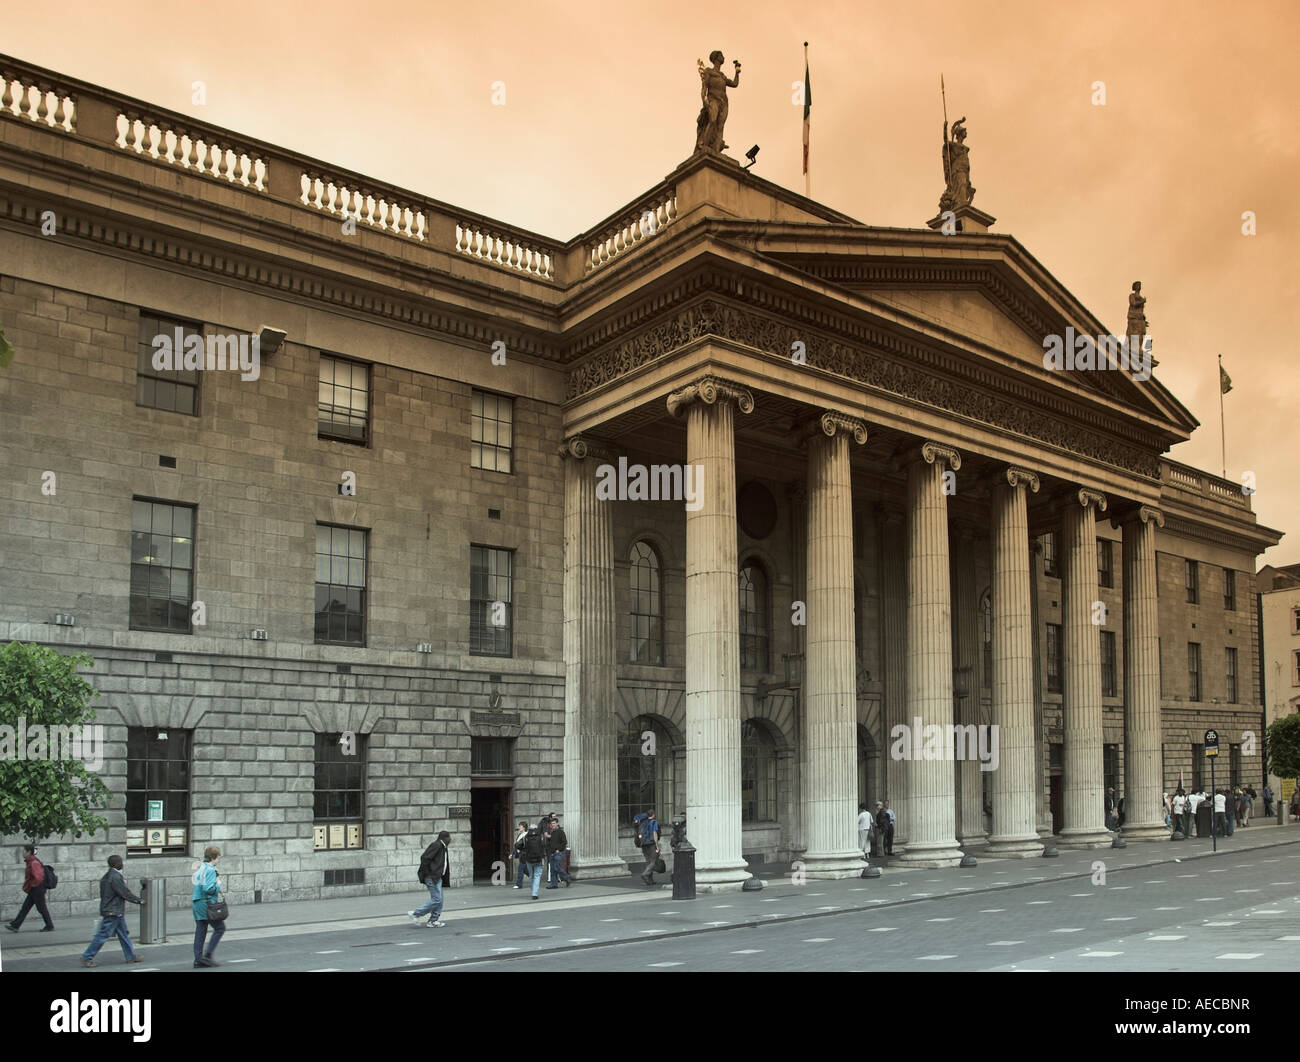 Dublin General Post Office - Stock Image